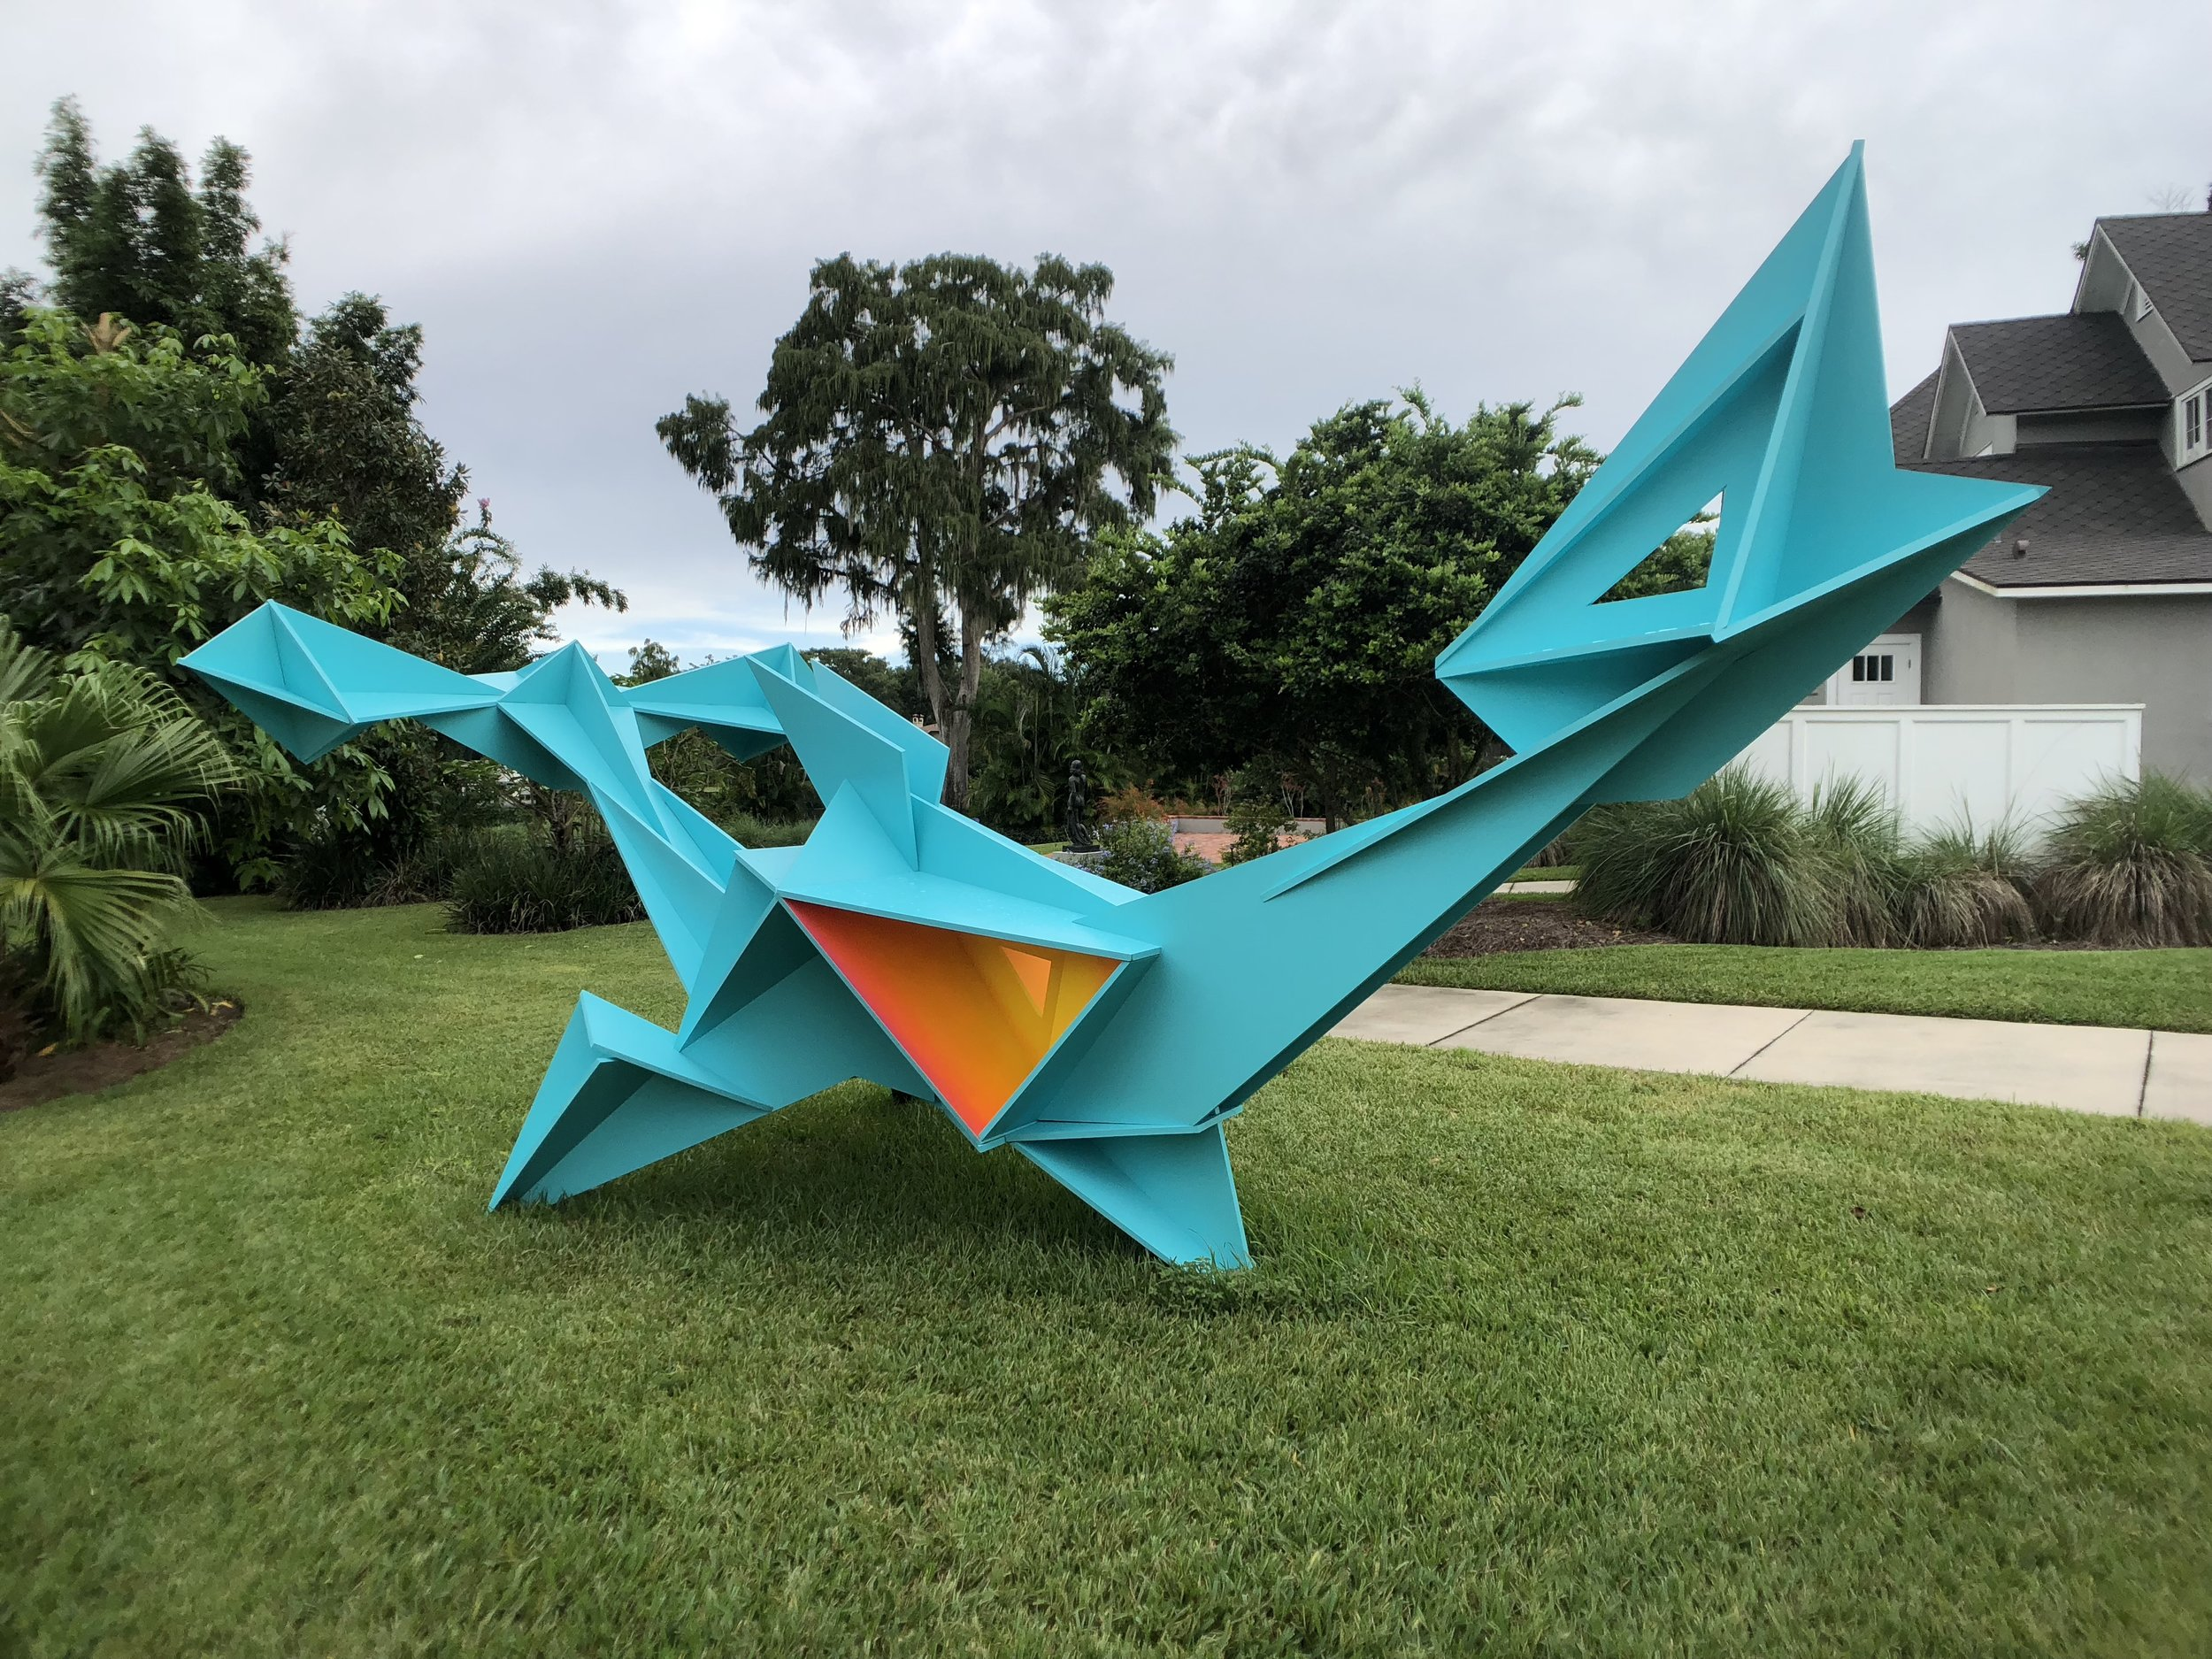 POINT SHIP, Plywood (Aqua-colored triangular, outdoor sculpture in back gardens)